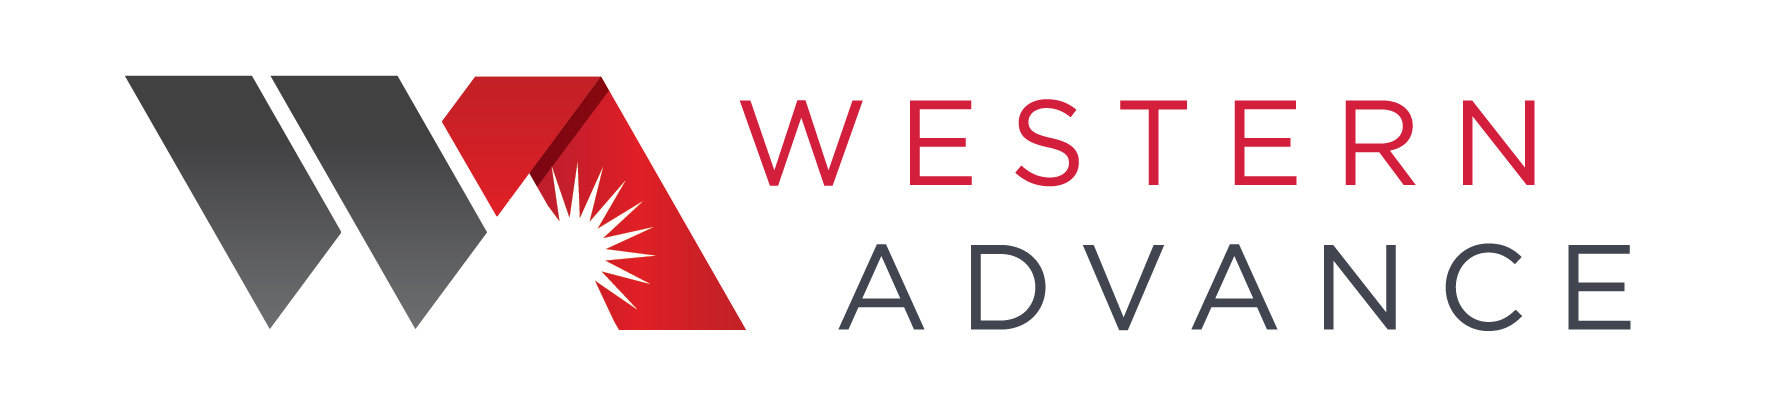 Western Advance Pty Ltd